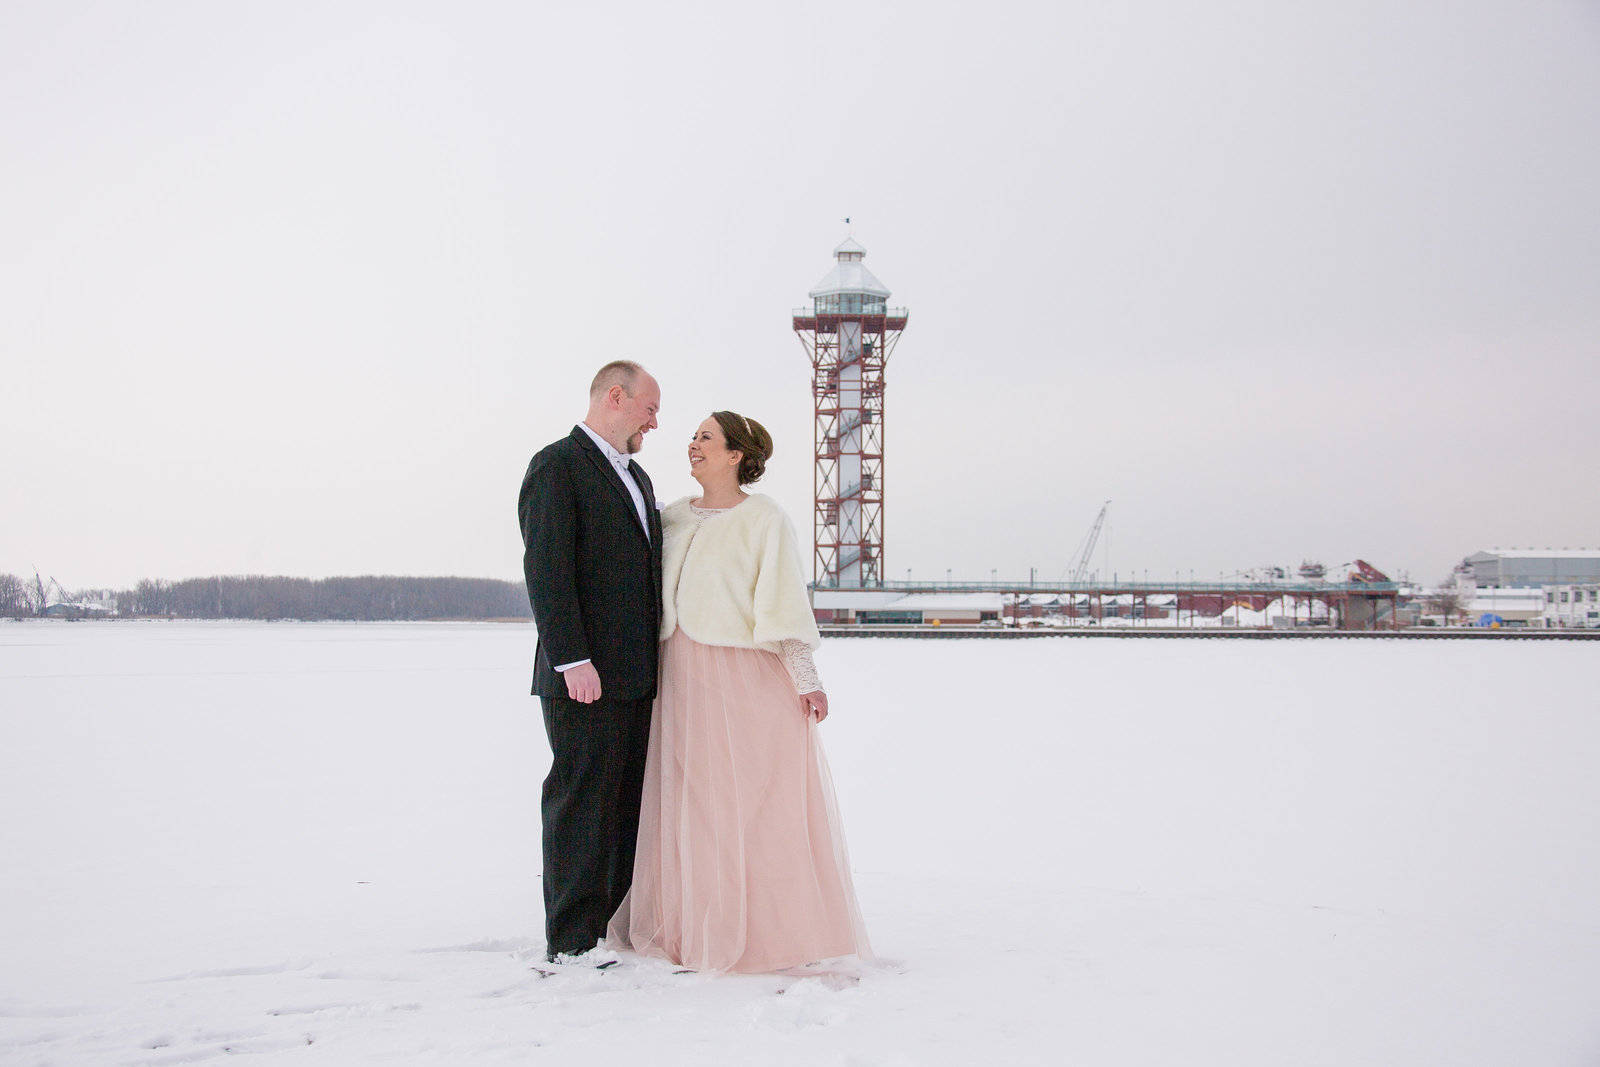 Bride and groom pose outside Sheraton Erie Bayfront Hotel in winter with the Bicentennial Tower in the background